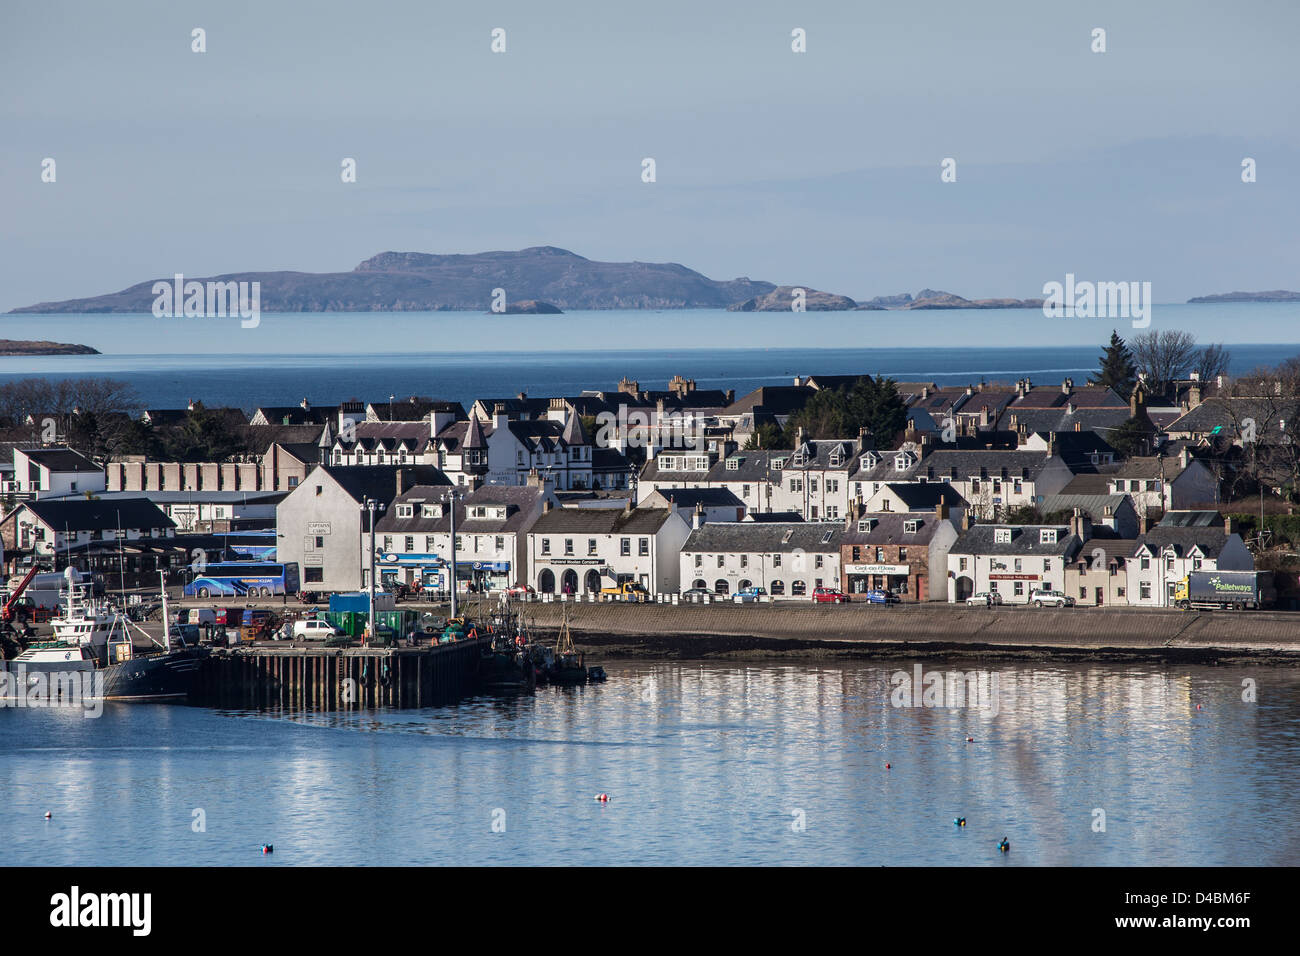 Ullapool town on Loch Broom in the Highlands of Scotland. - Stock Image